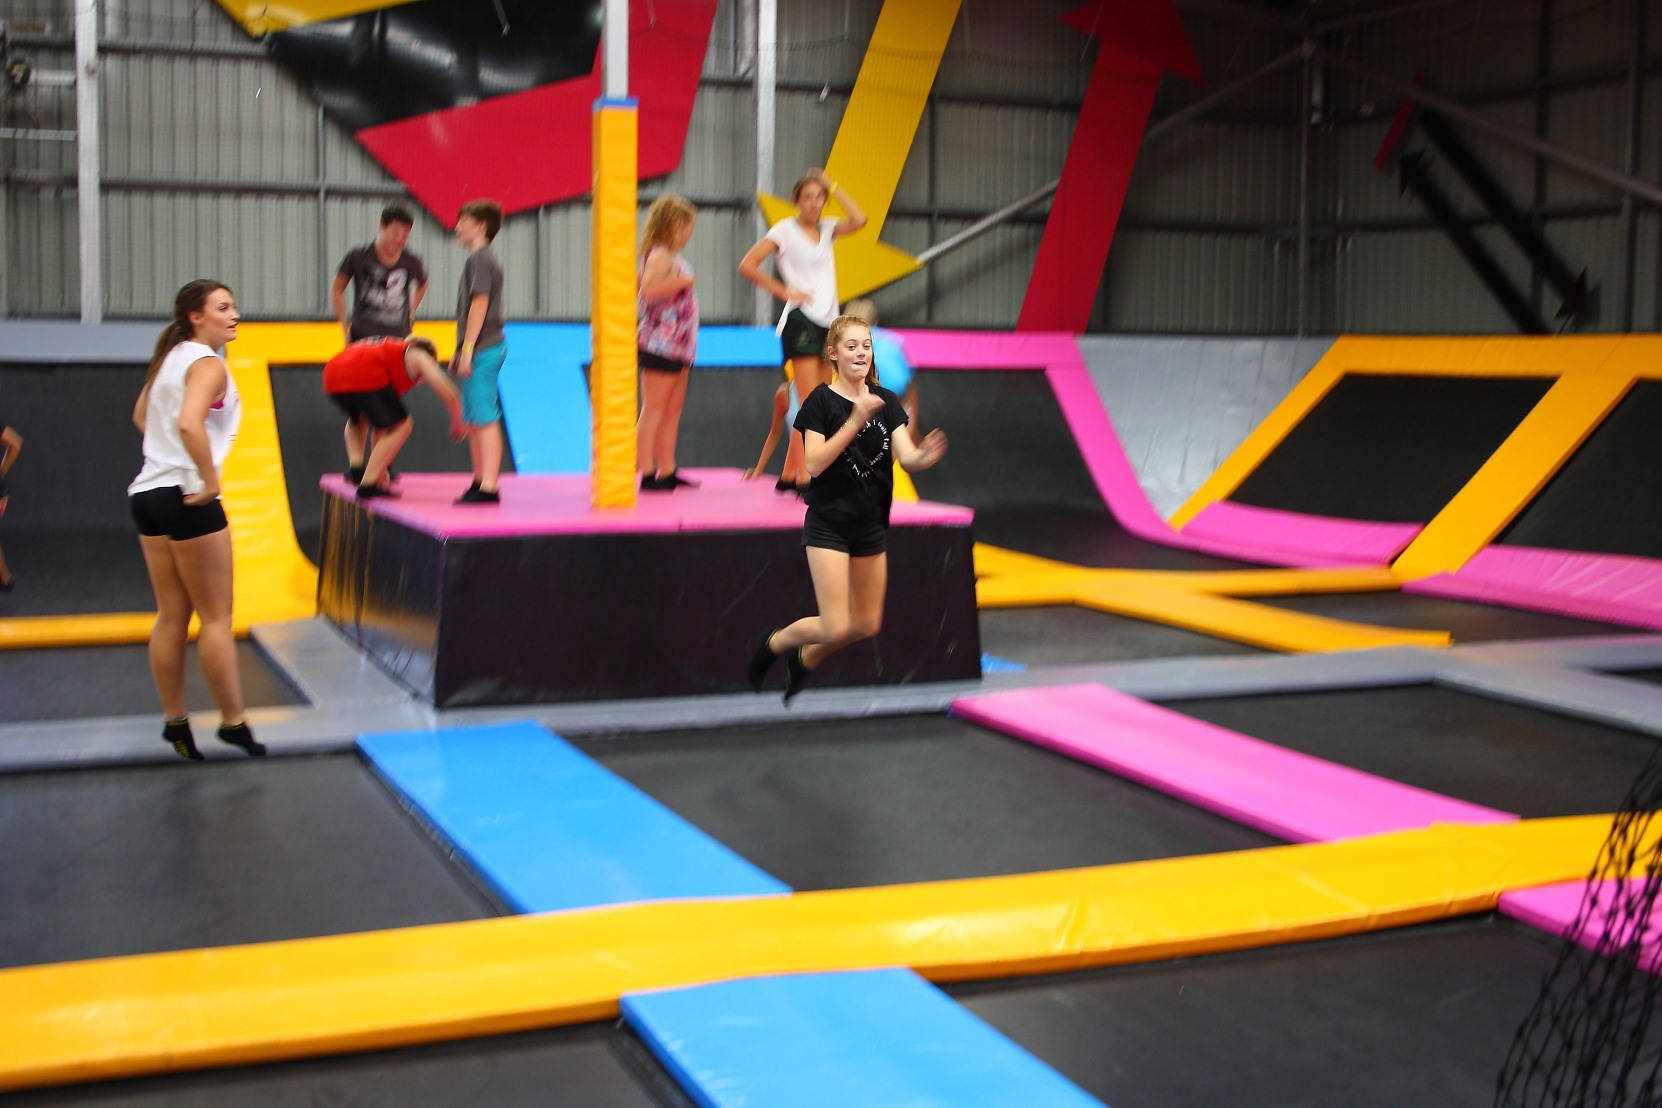 bounceinc trampoline park activities centre perth. Black Bedroom Furniture Sets. Home Design Ideas